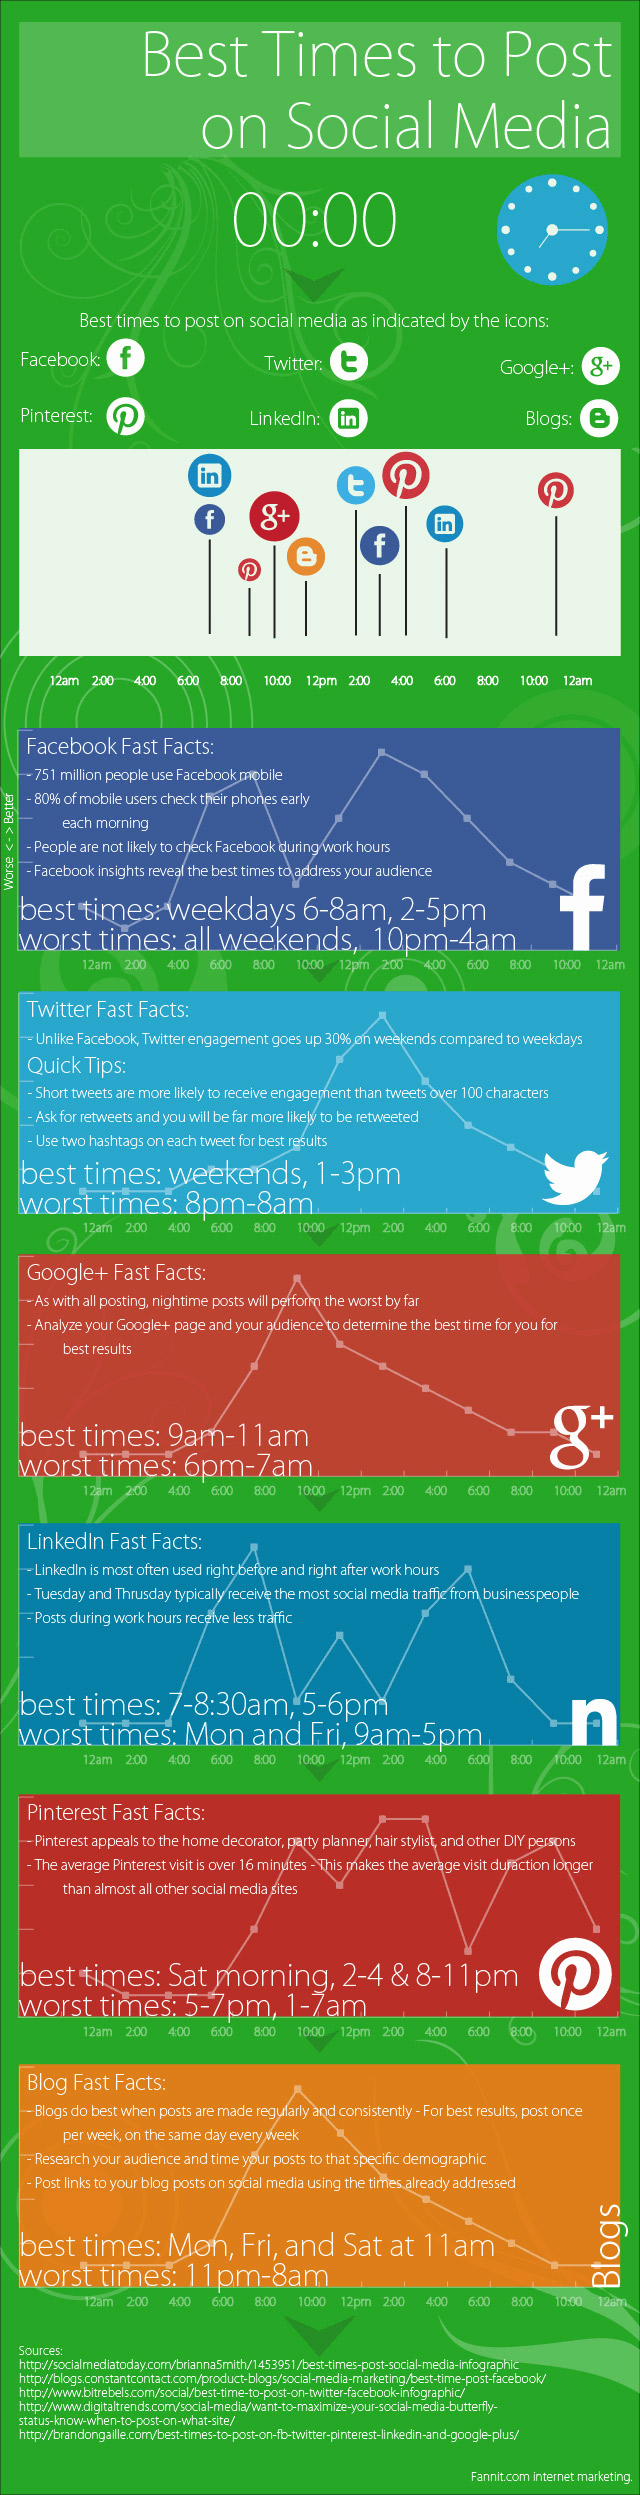 Infographic on the Best Times to Post to Social Media Networks